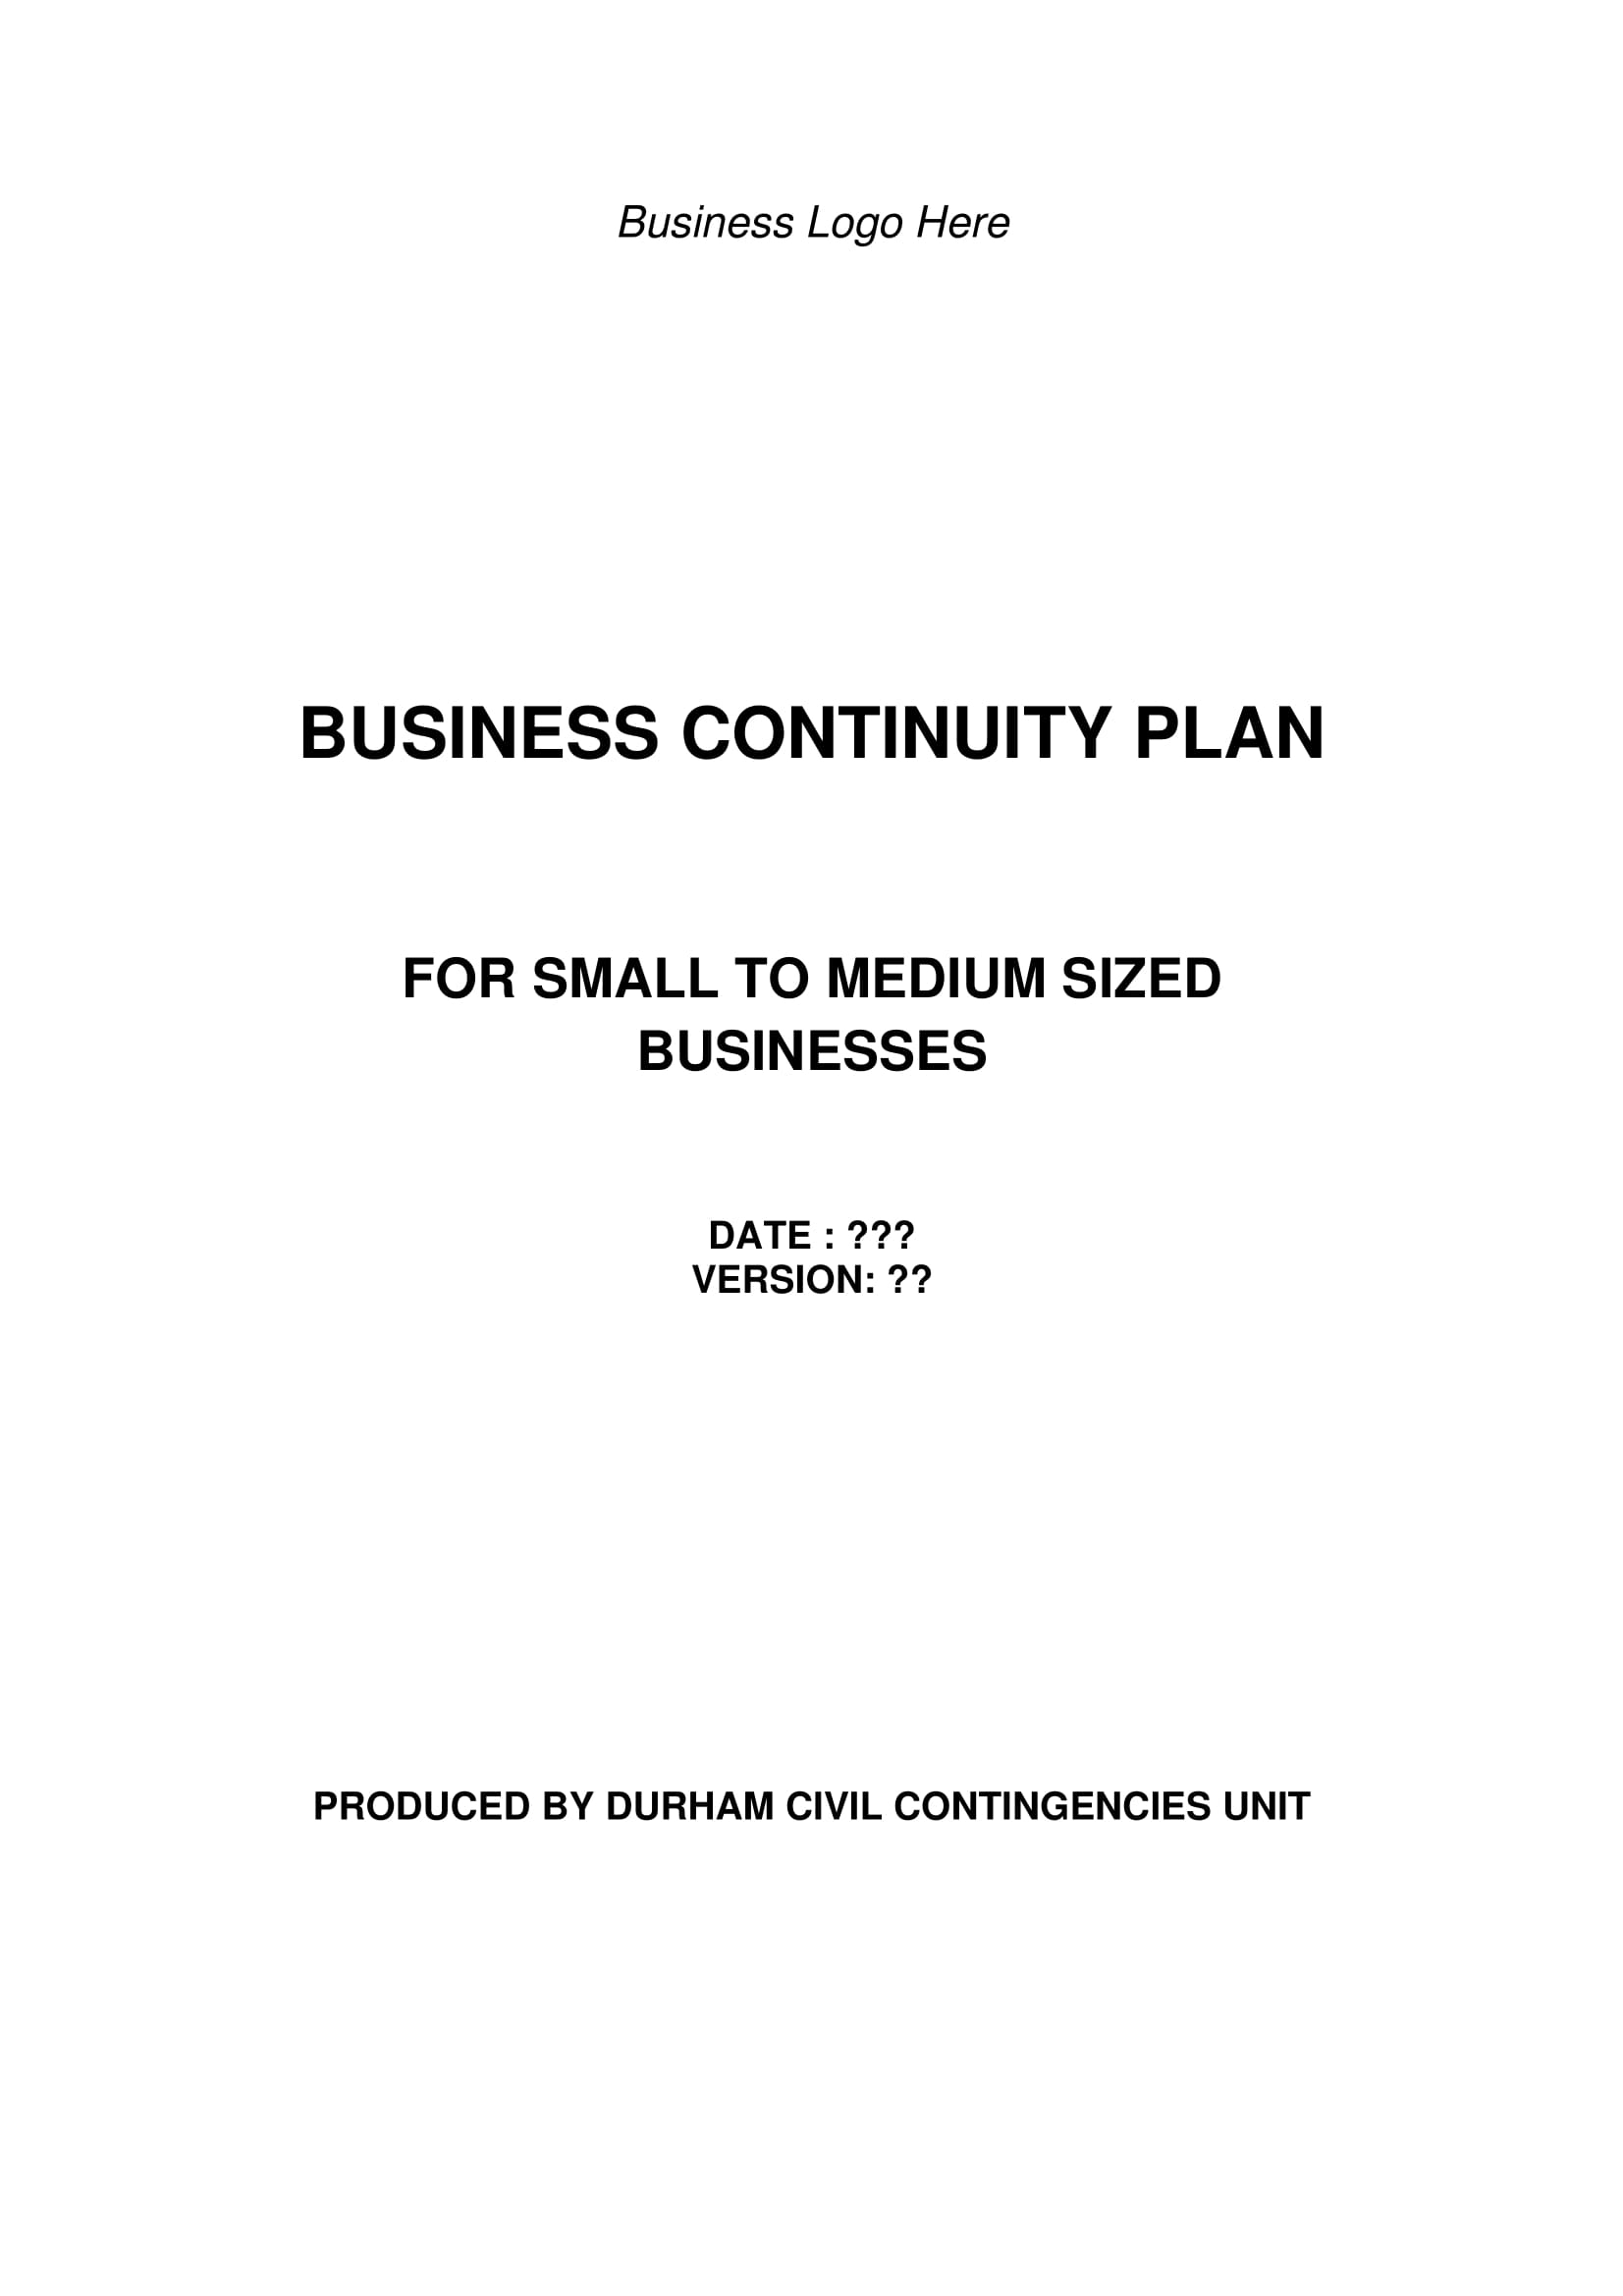 business continuity plan for small to medium sized businesses example 01